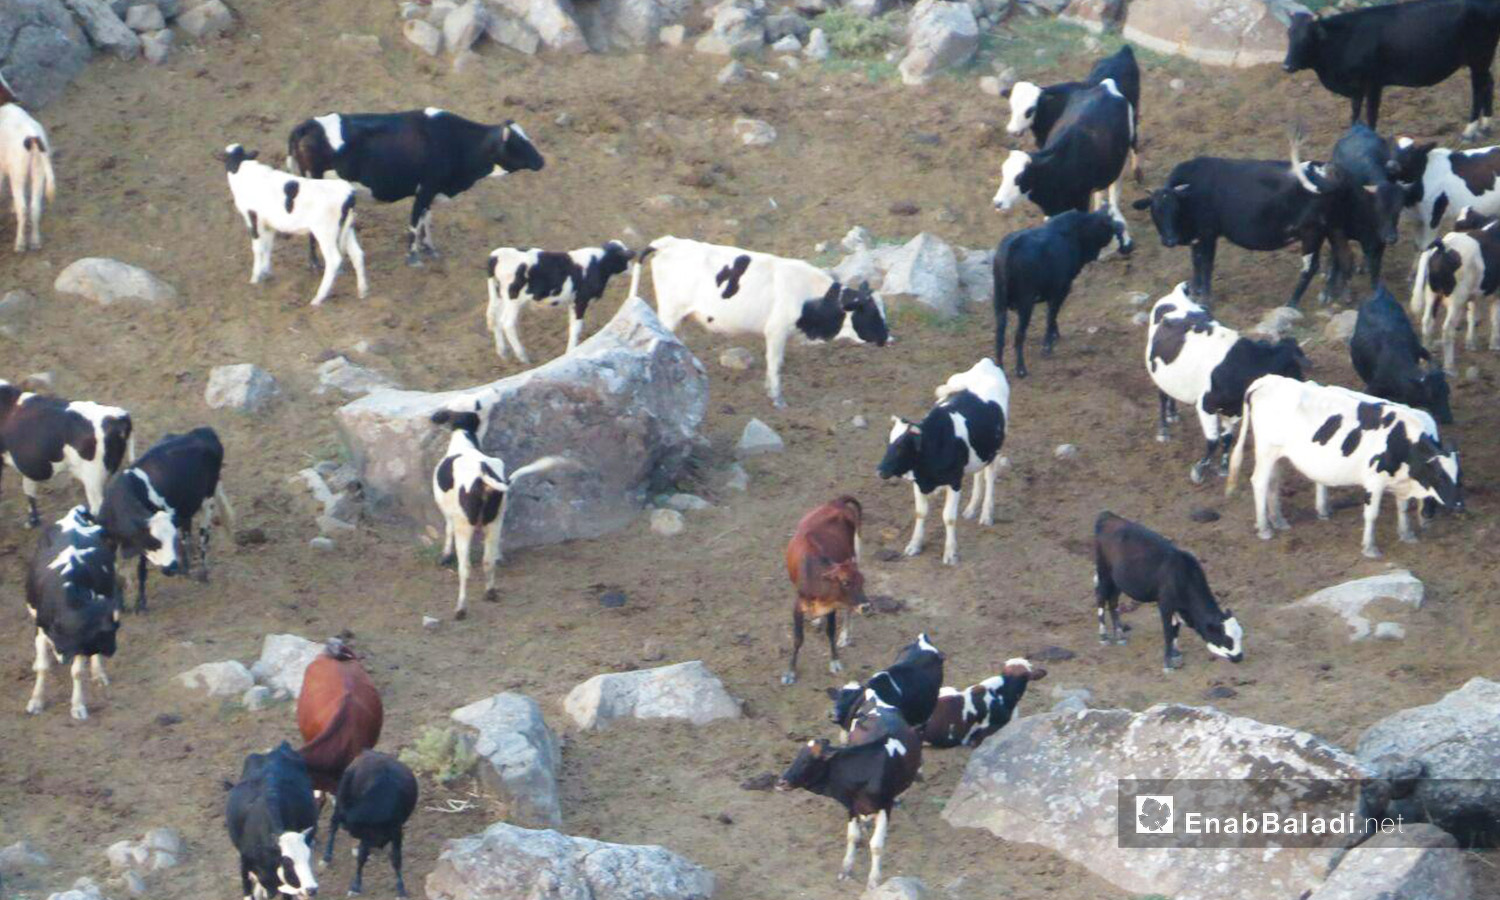 The cows grazing in the Yarmouk Valley – 07 August 2020 (Enab Baladi / Halim Mohammad)